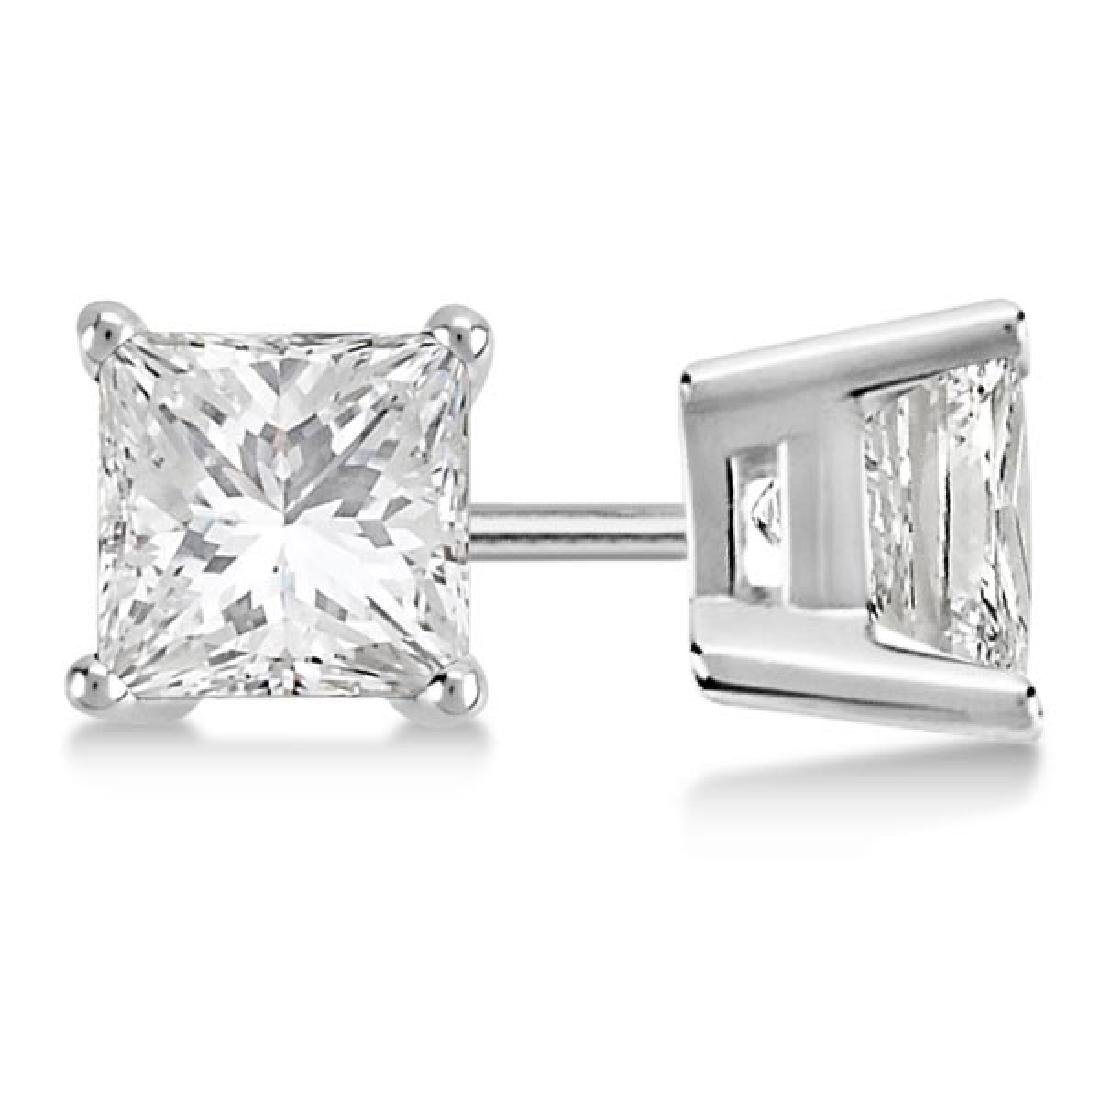 Certified 1.01 CTW Princess Diamond Stud Earrings G/SI2